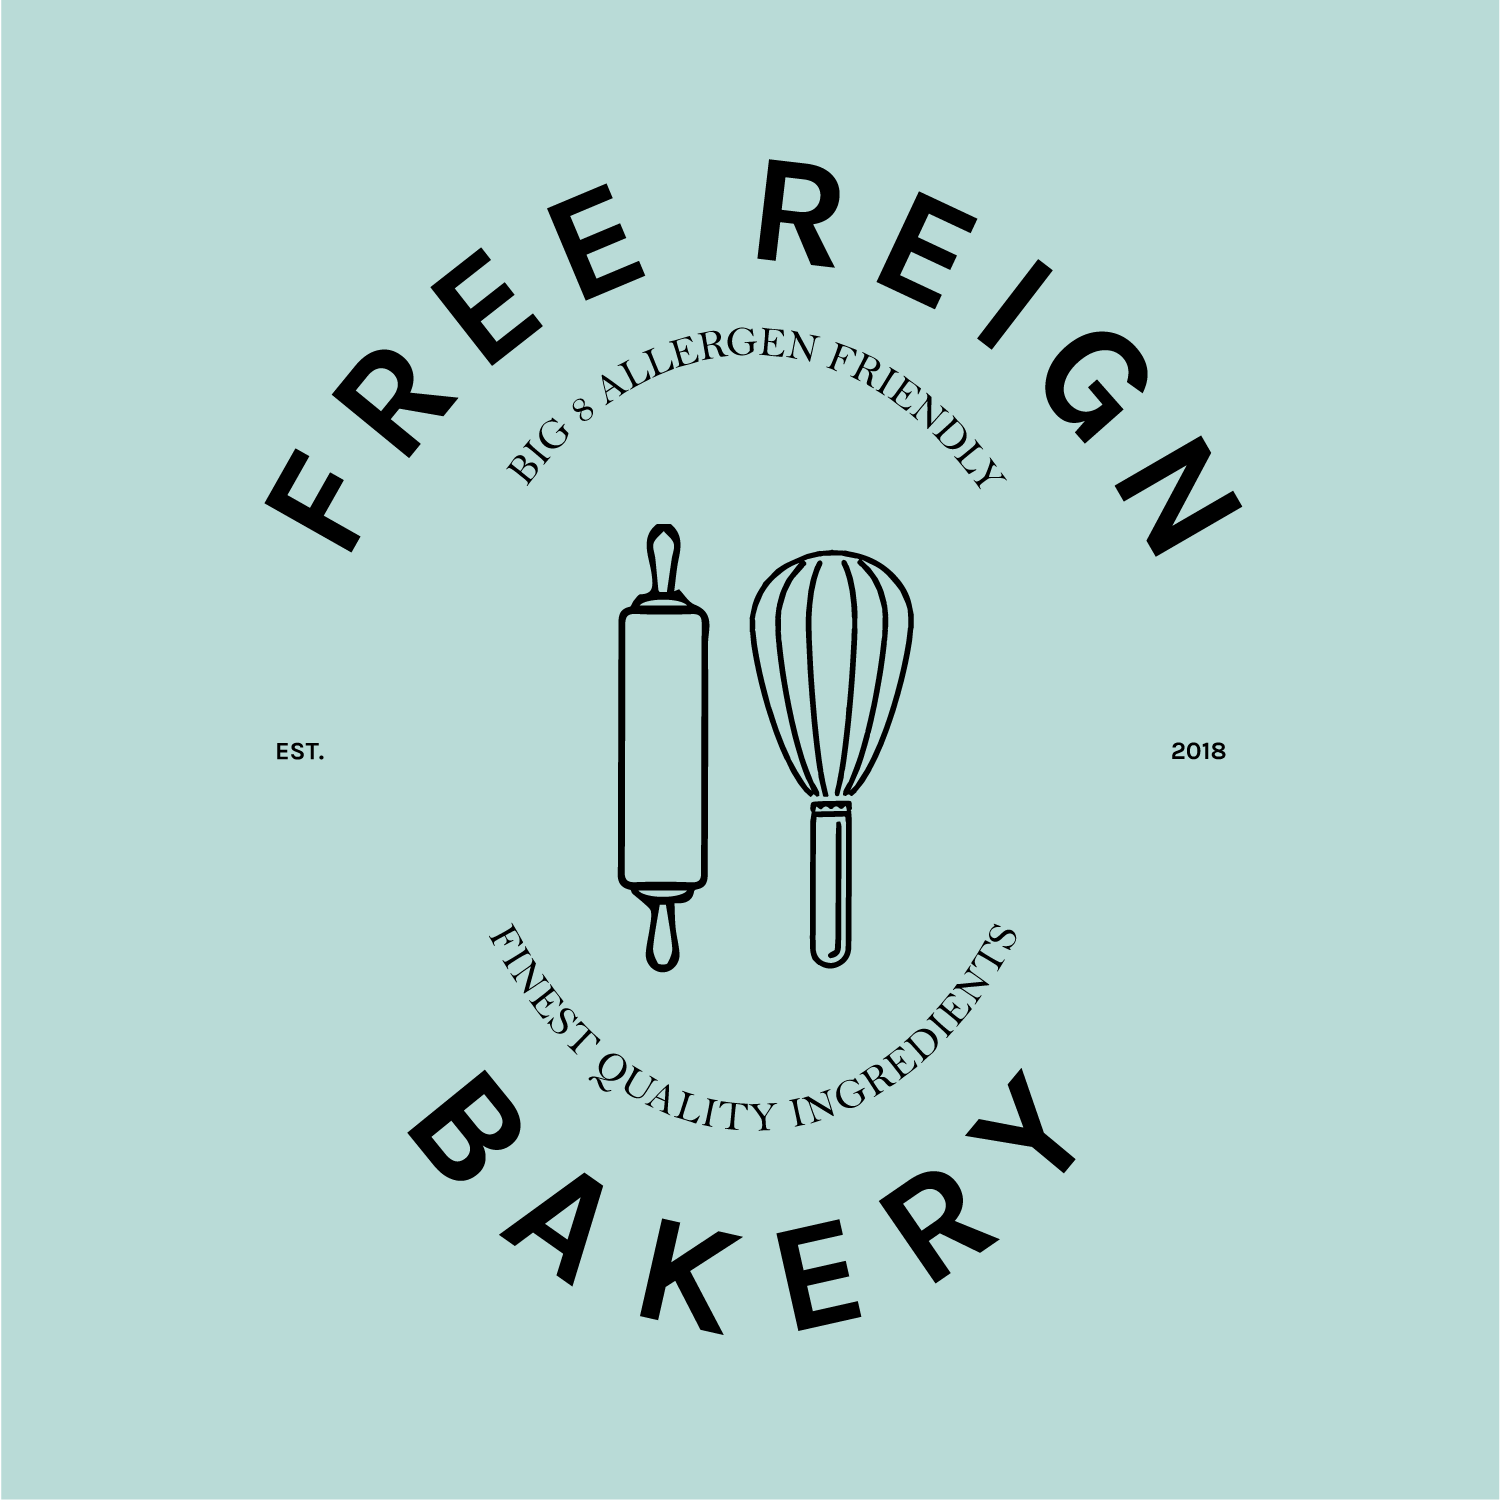 Free Reign Bakery